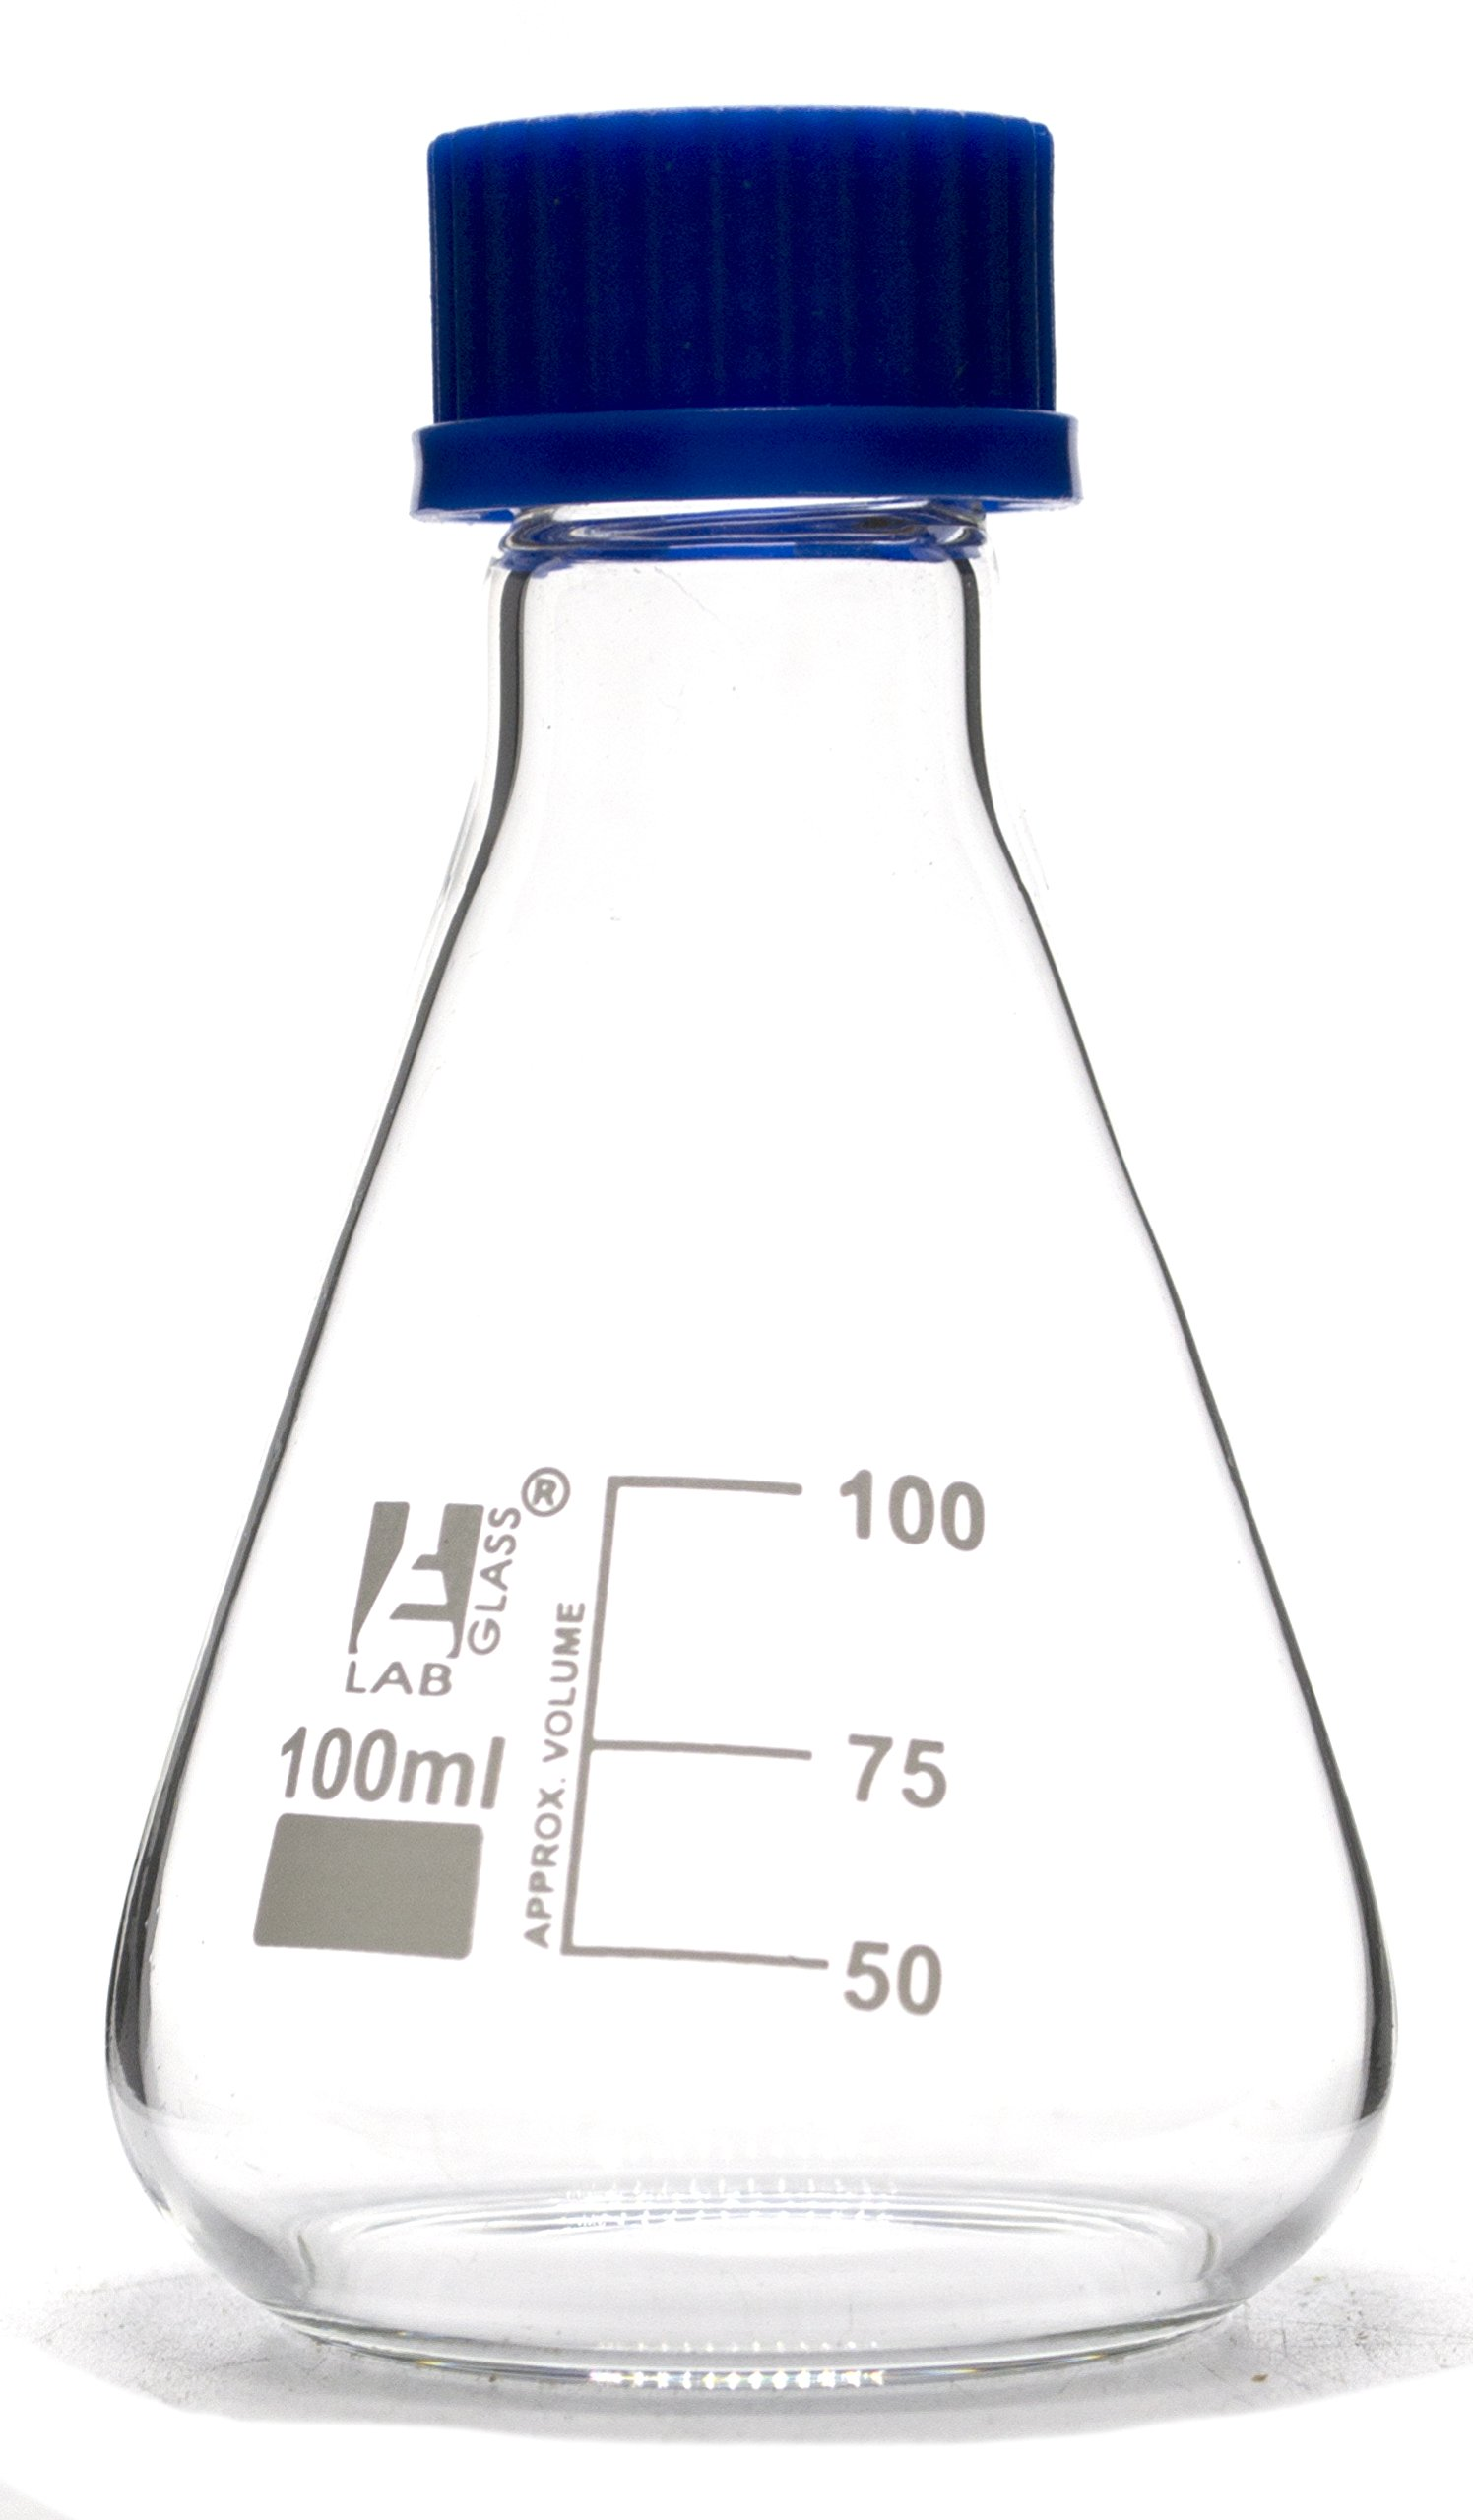 100mL Glass Erlenmeyer Flask with PTFE Lined Screw Cap, Borosilicate 3.3 Glass - Eisco Labs by EISCO